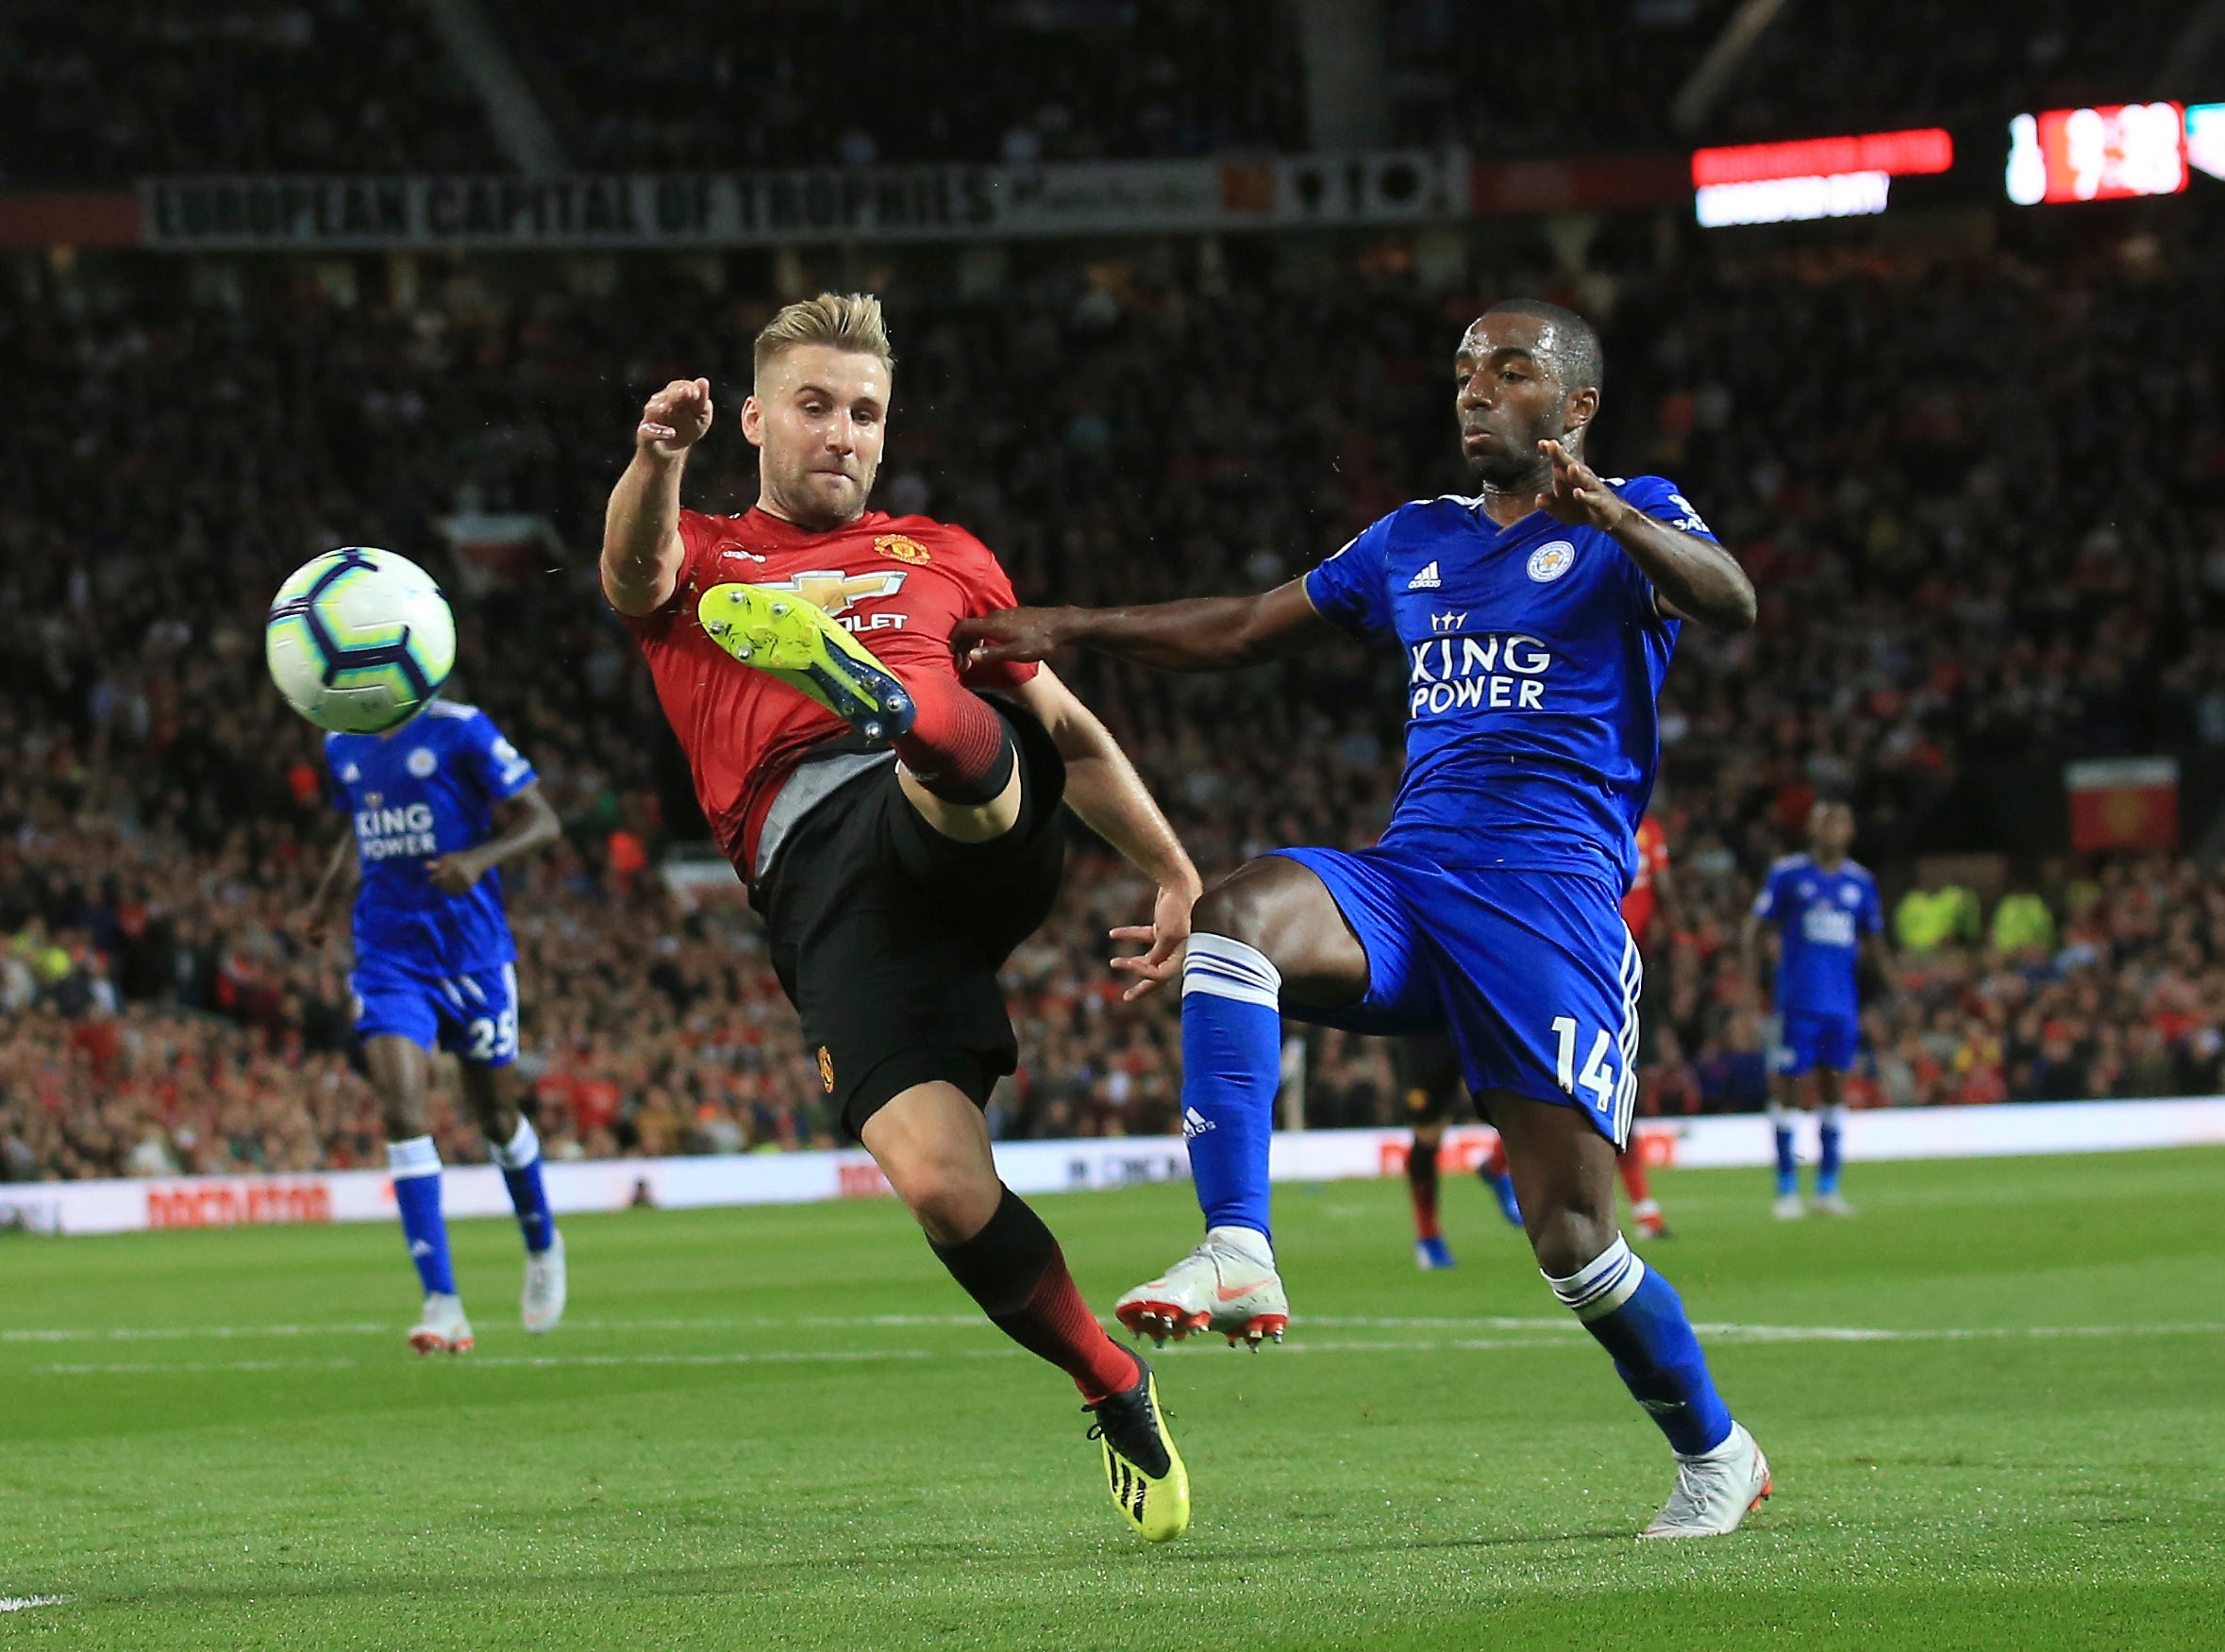 Manchester United's Luke Shaw shoots and scores his team's second goal against Leicester.